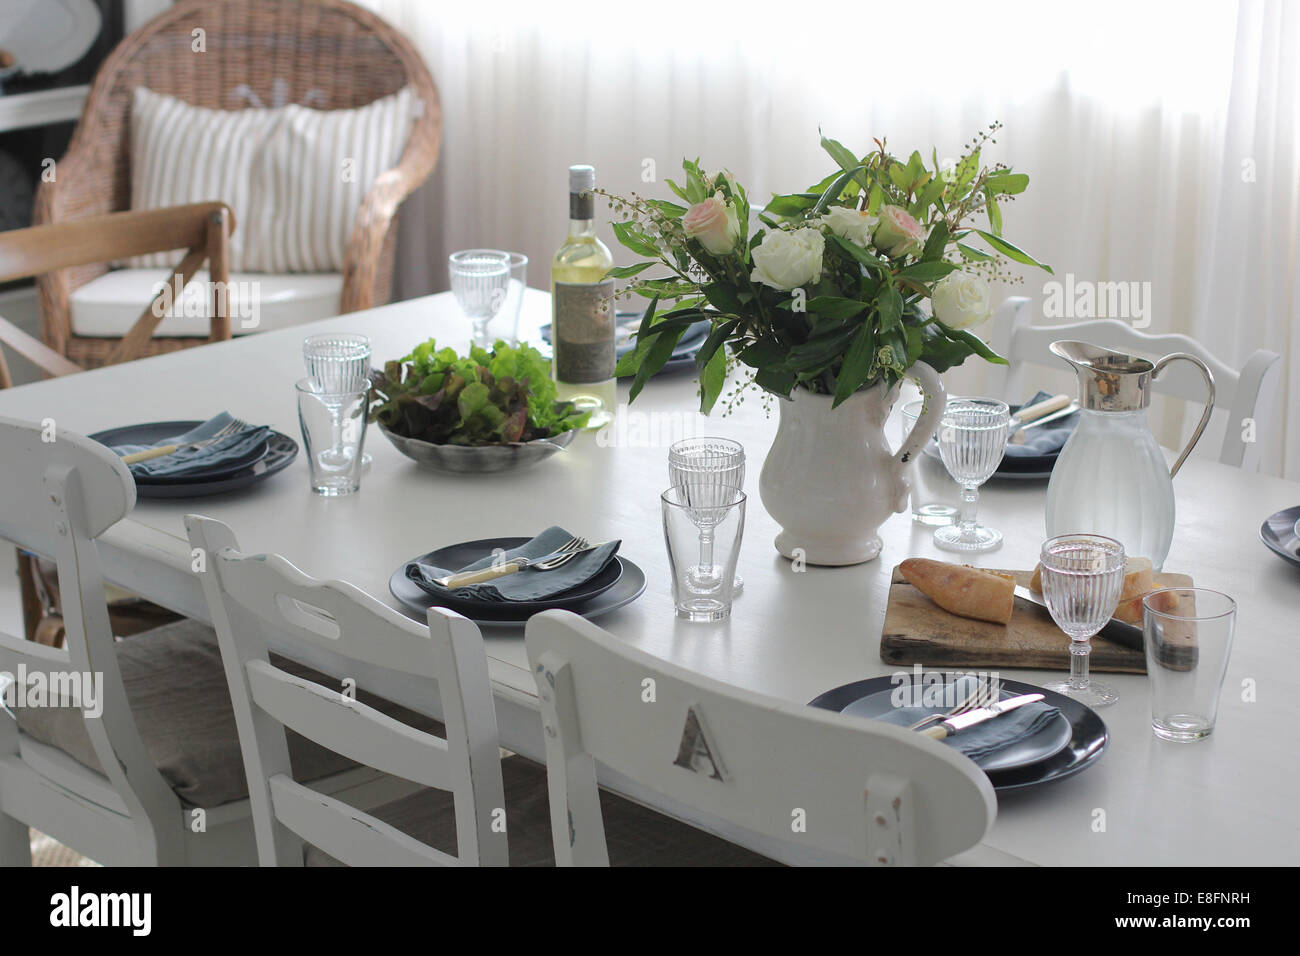 Dining table set for lunch - Stock Image